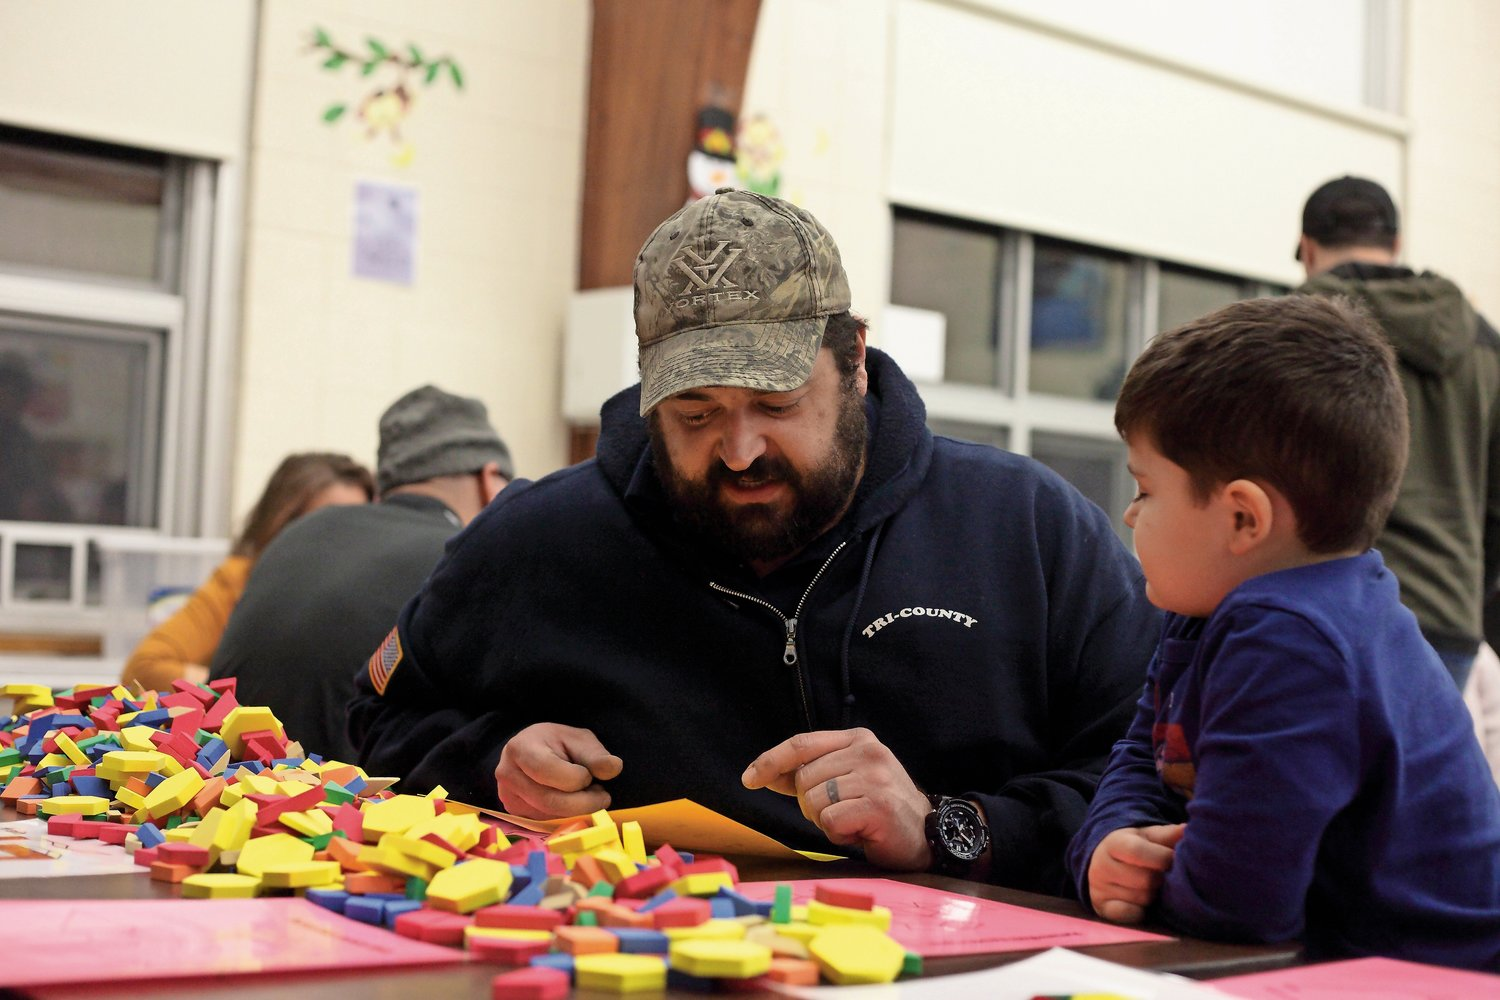 Mike Carfora and his son, Everett, 4, enjoyed a variety of hands-on math and English language building activities.